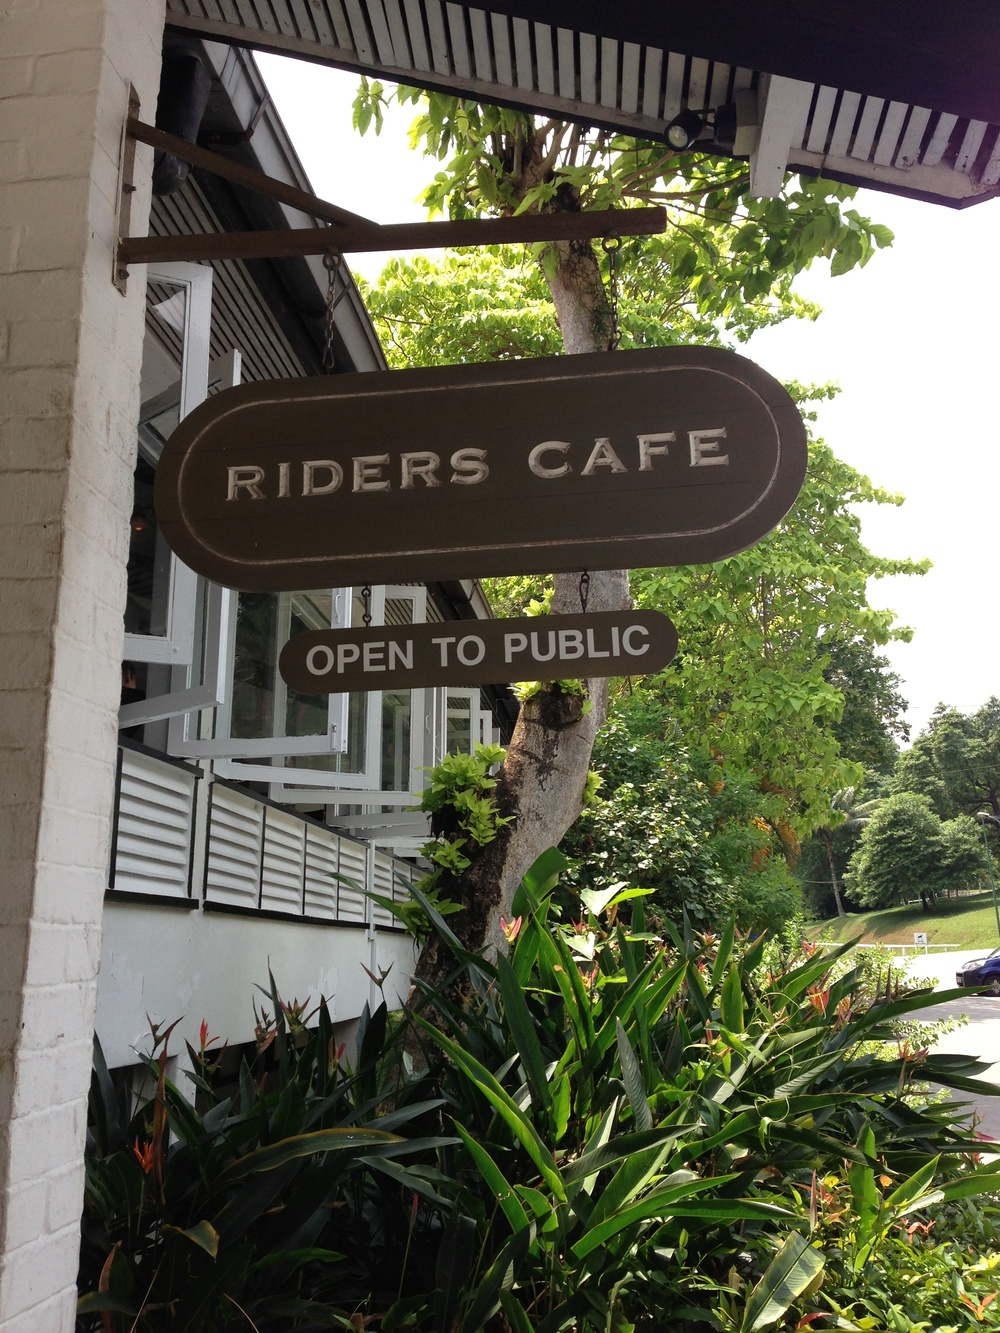 Riders Cafe